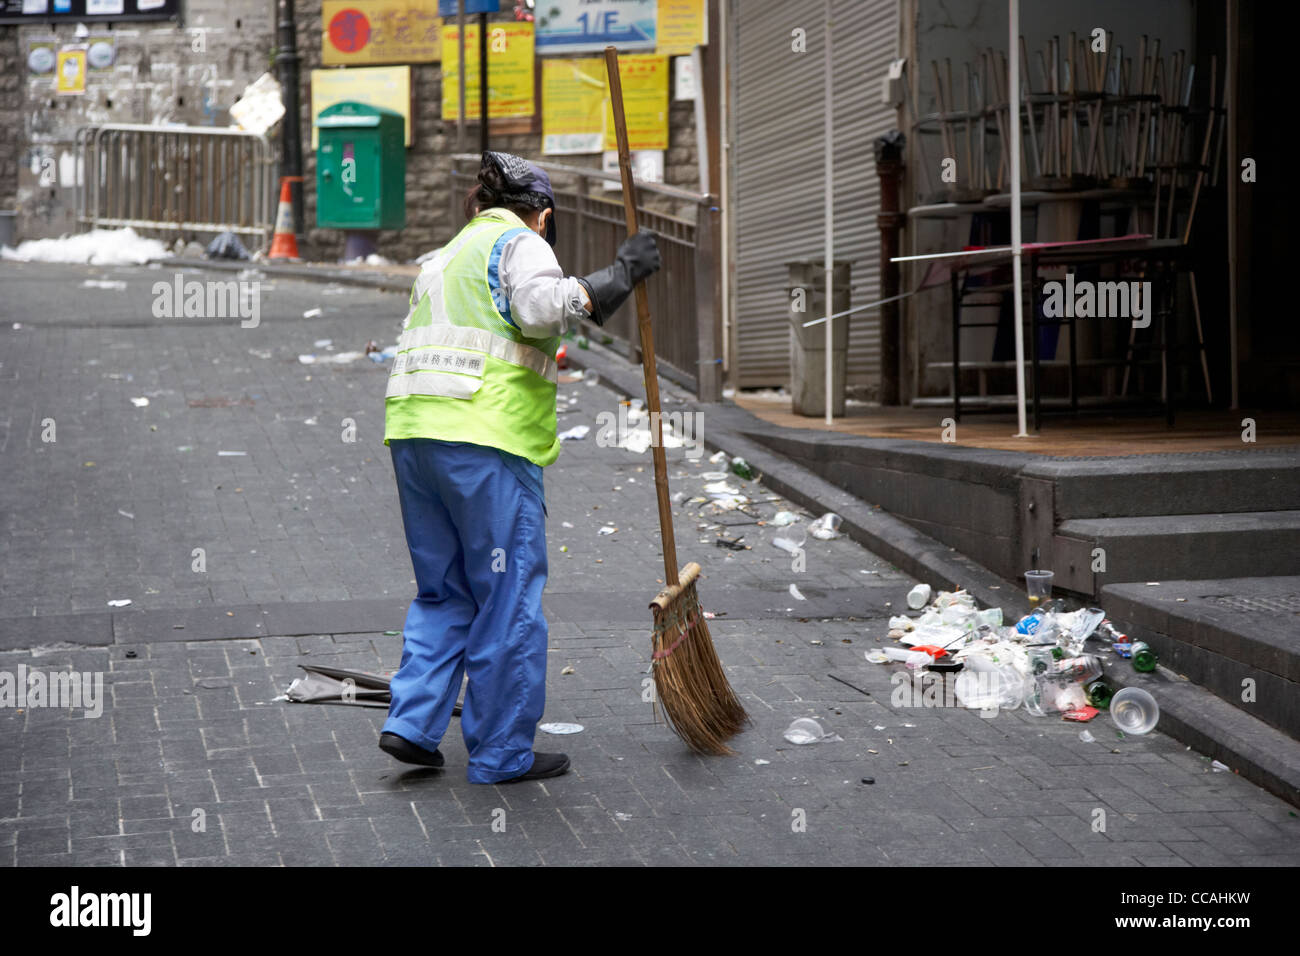 female street cleaner brushing streets with broom early morning in lan kwai fong hong kong hksar china asia - Stock Image